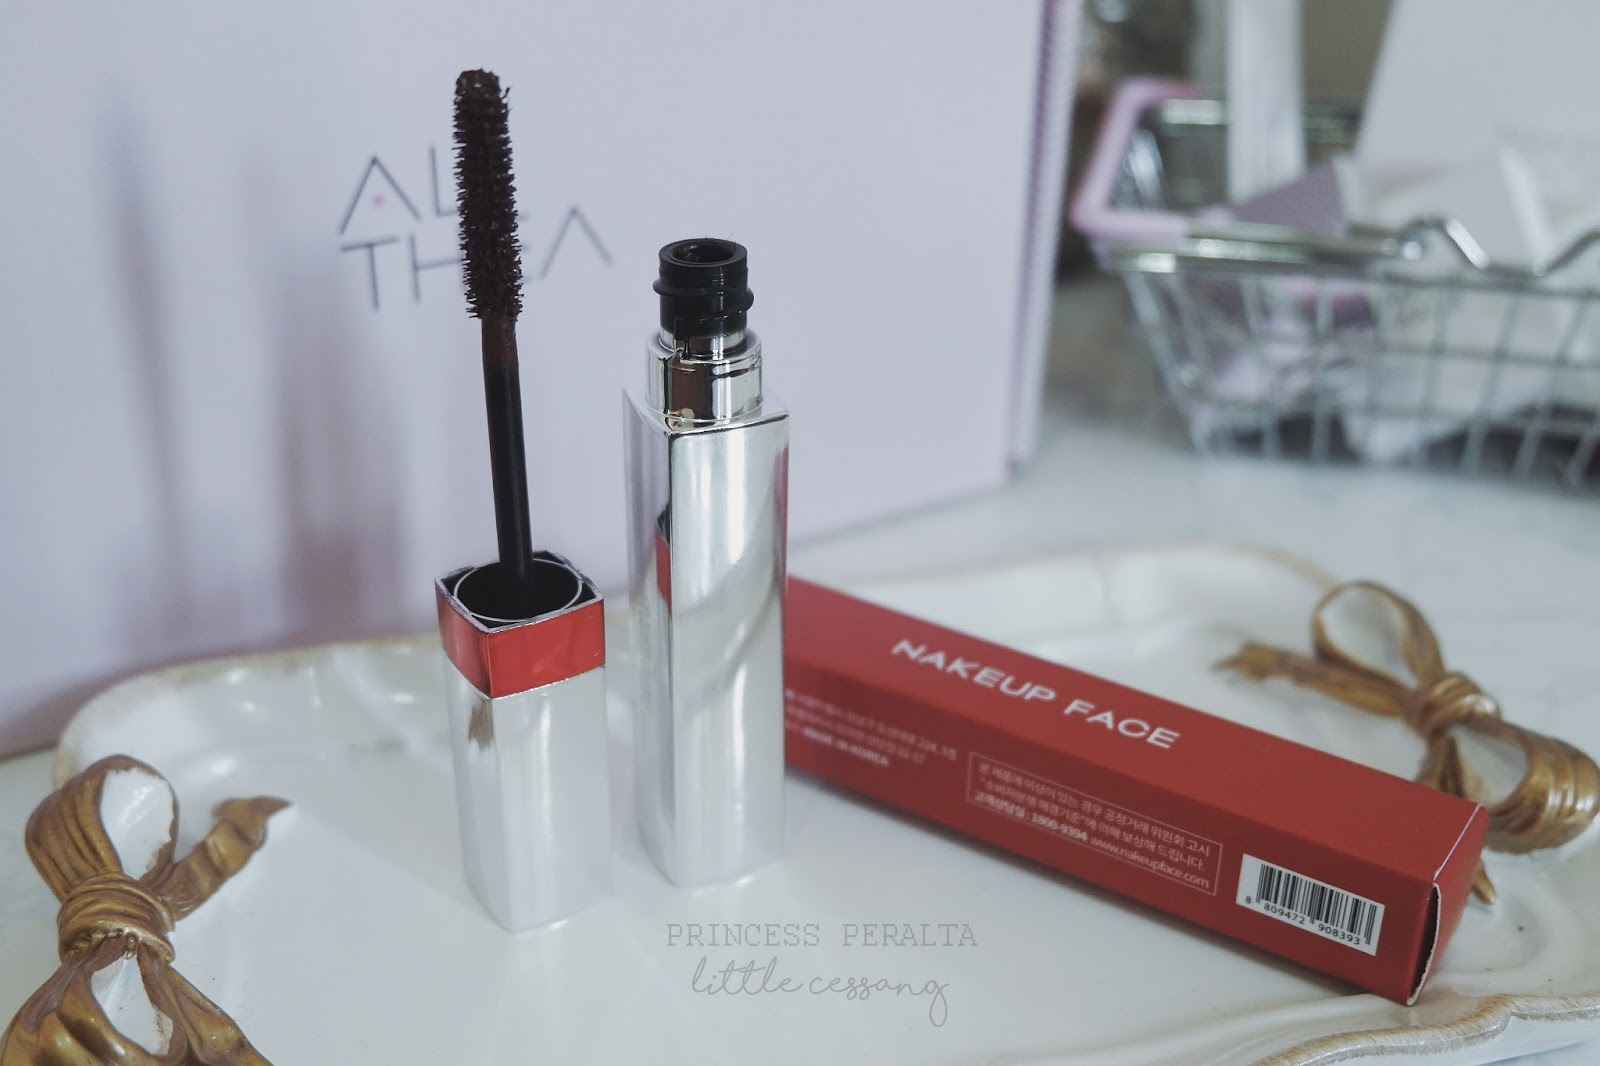 [ ALTHEA X NAKEUP FACE ] NAKEUP FACE MAKEUP SET & REVIEW